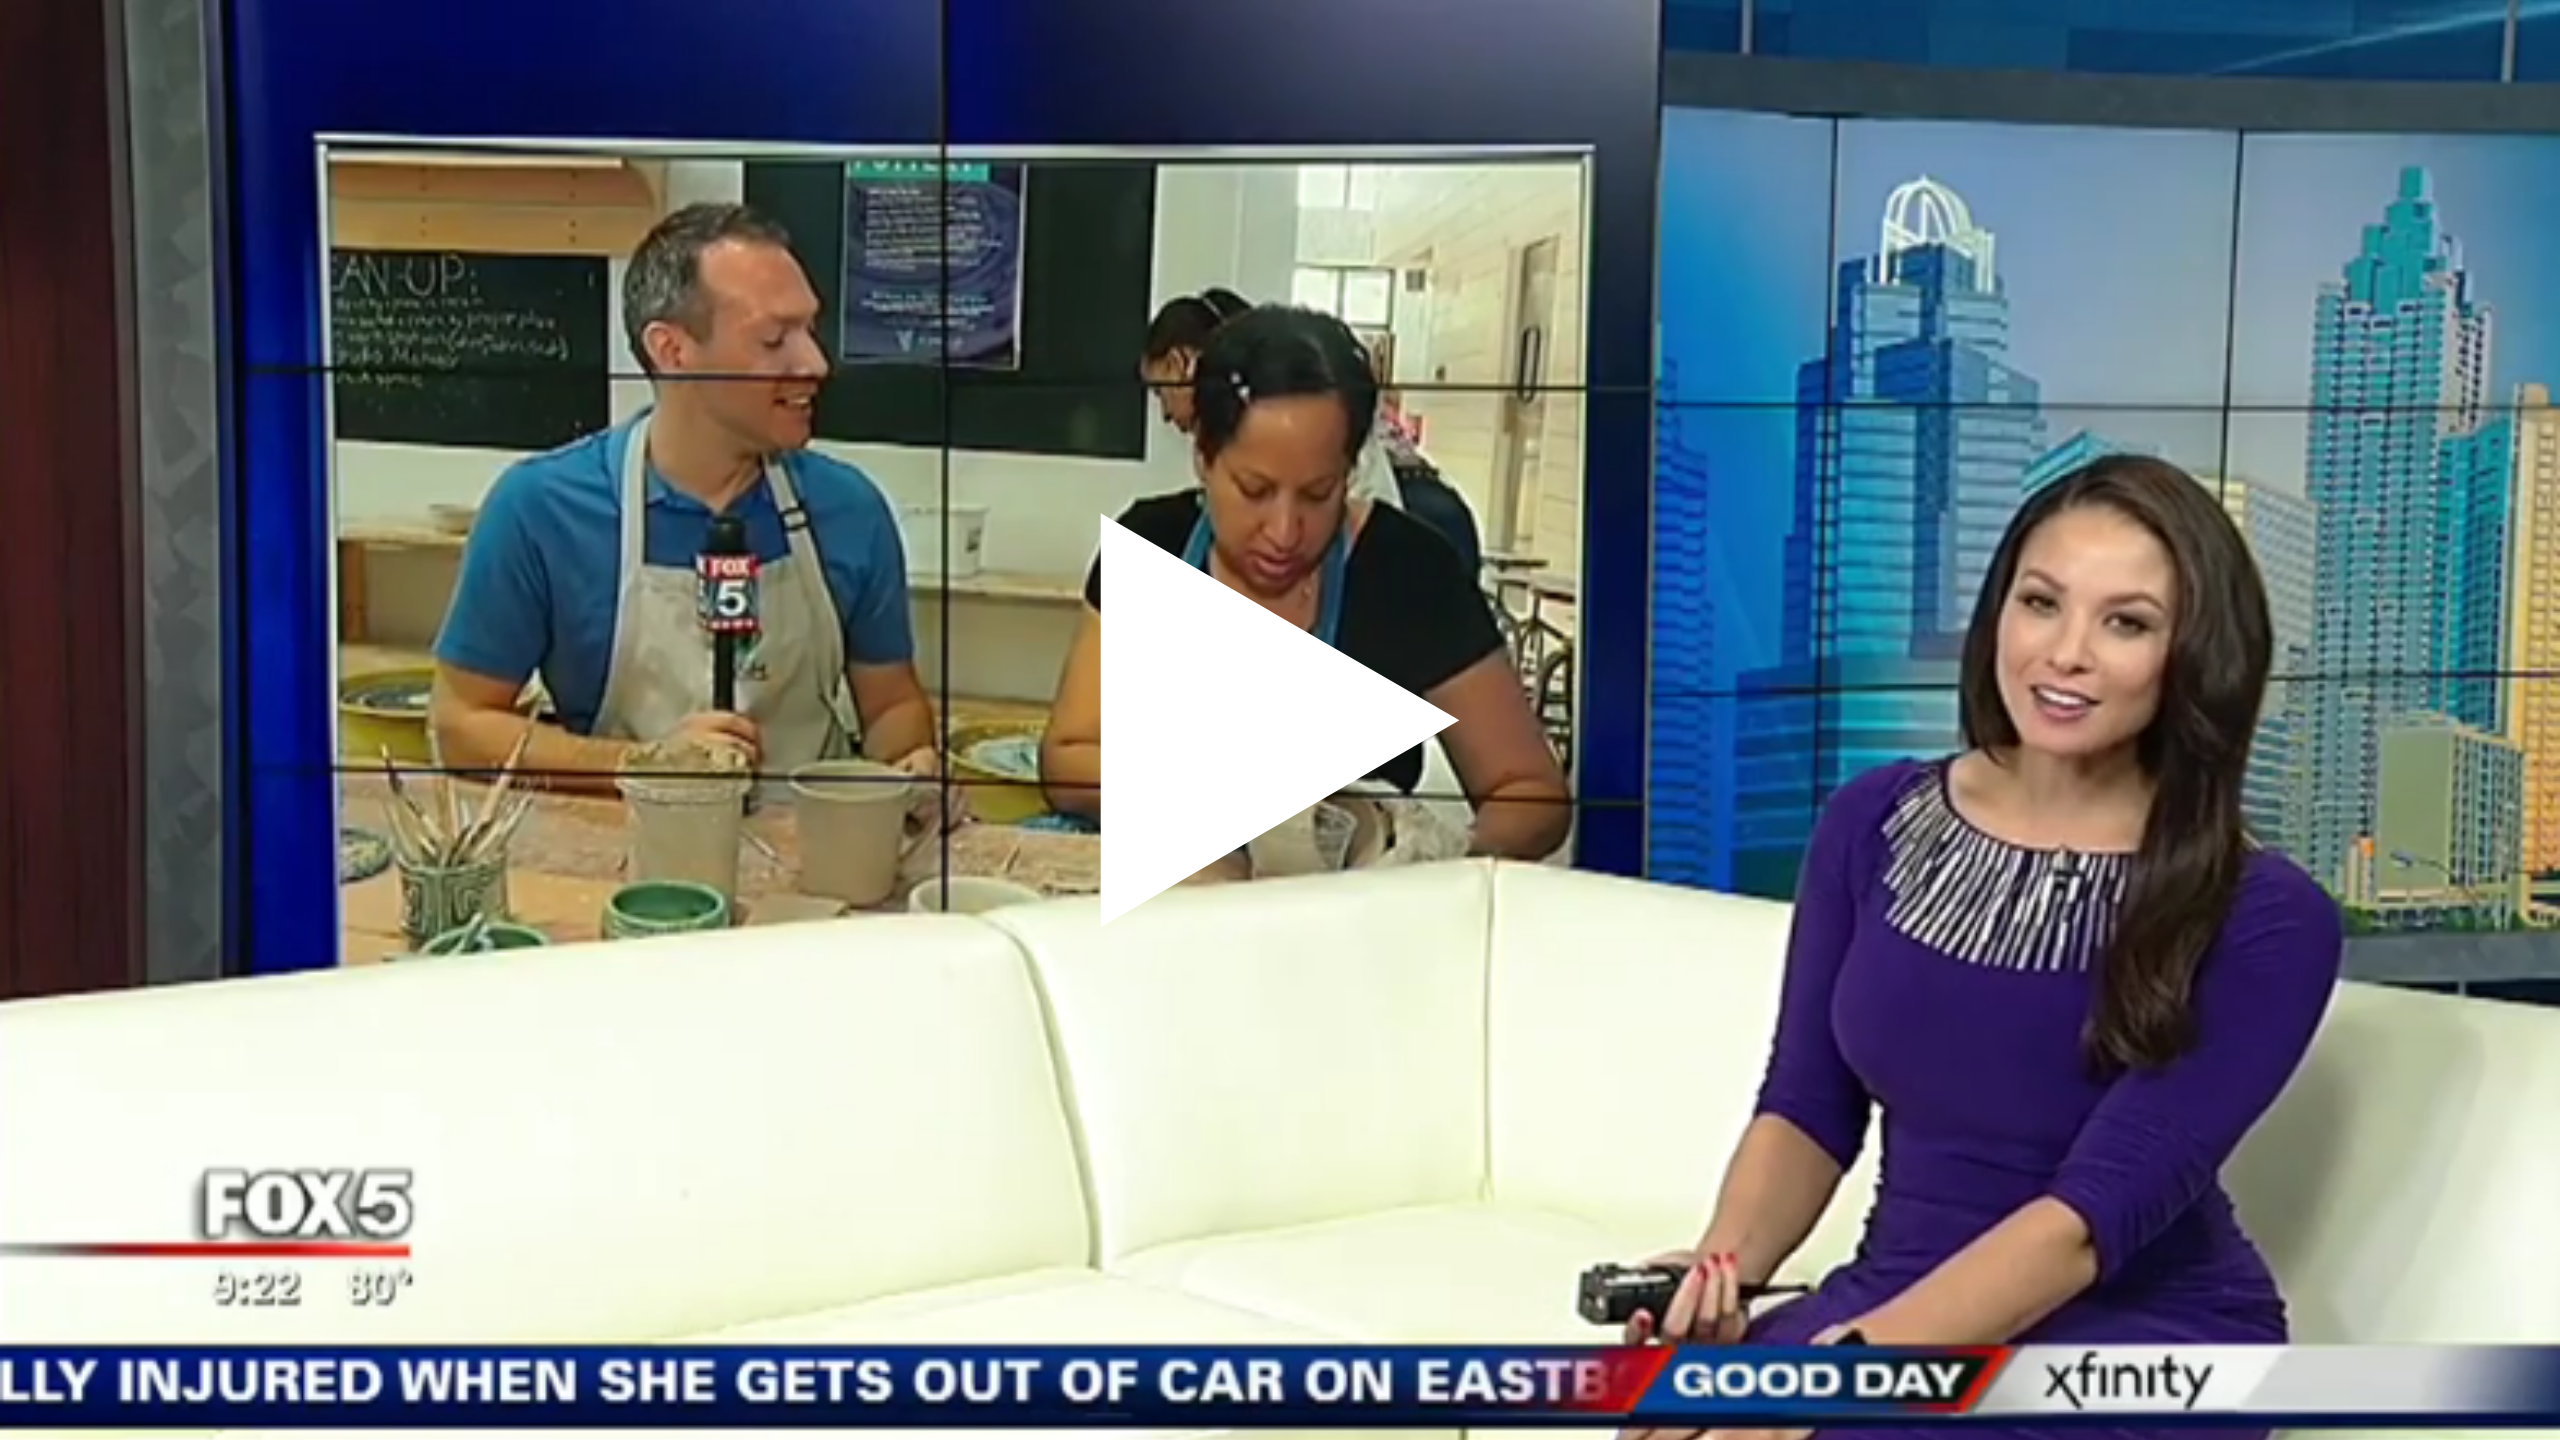 Did You See A C  Studios On Fox 5 Good Day Atlanta